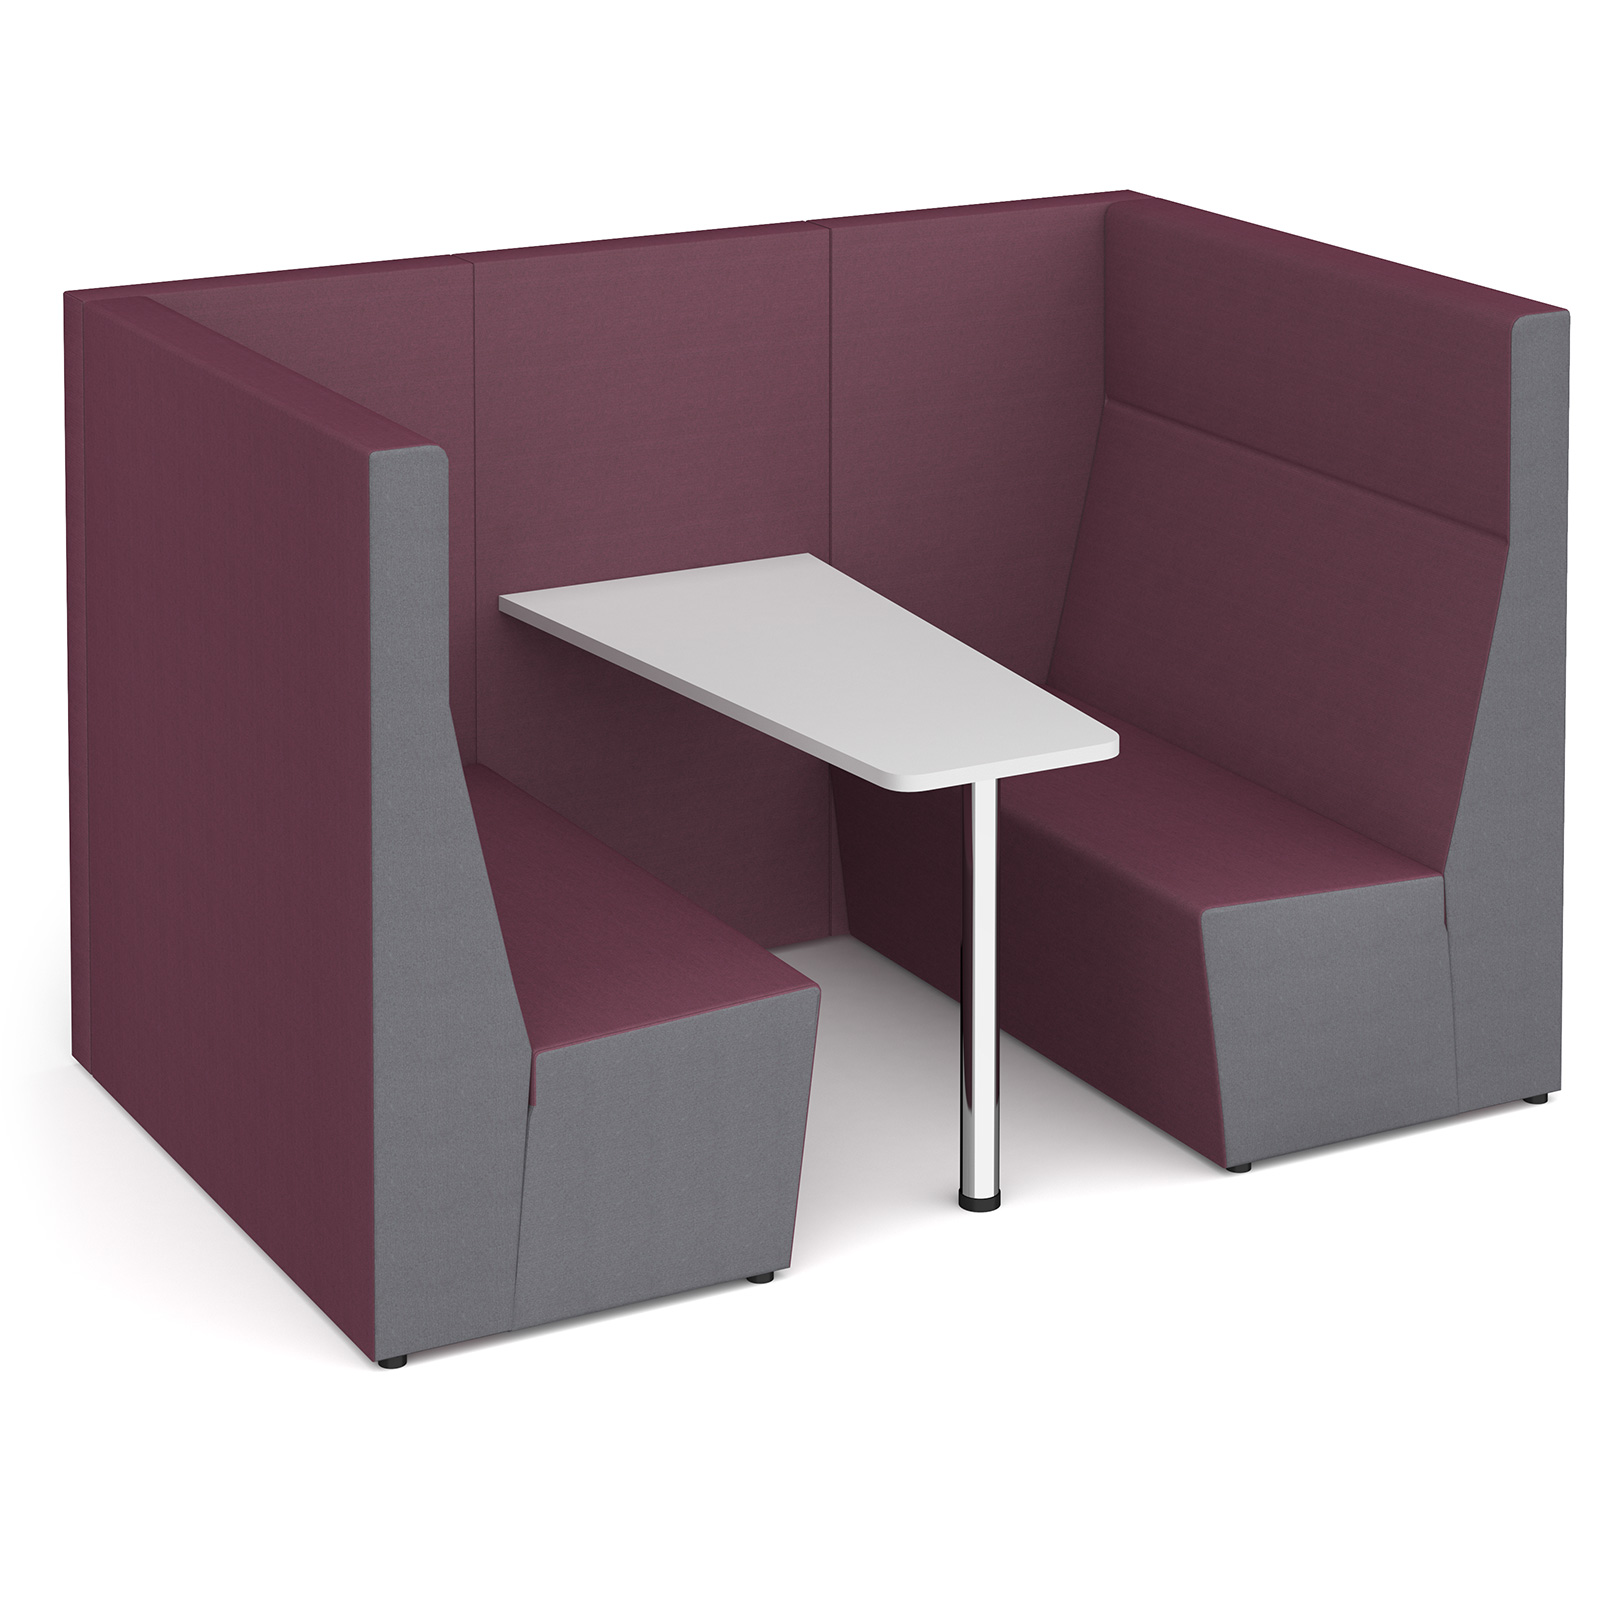 Ziggy Meeting Booths (2-4 Seaters, Range of Colours)